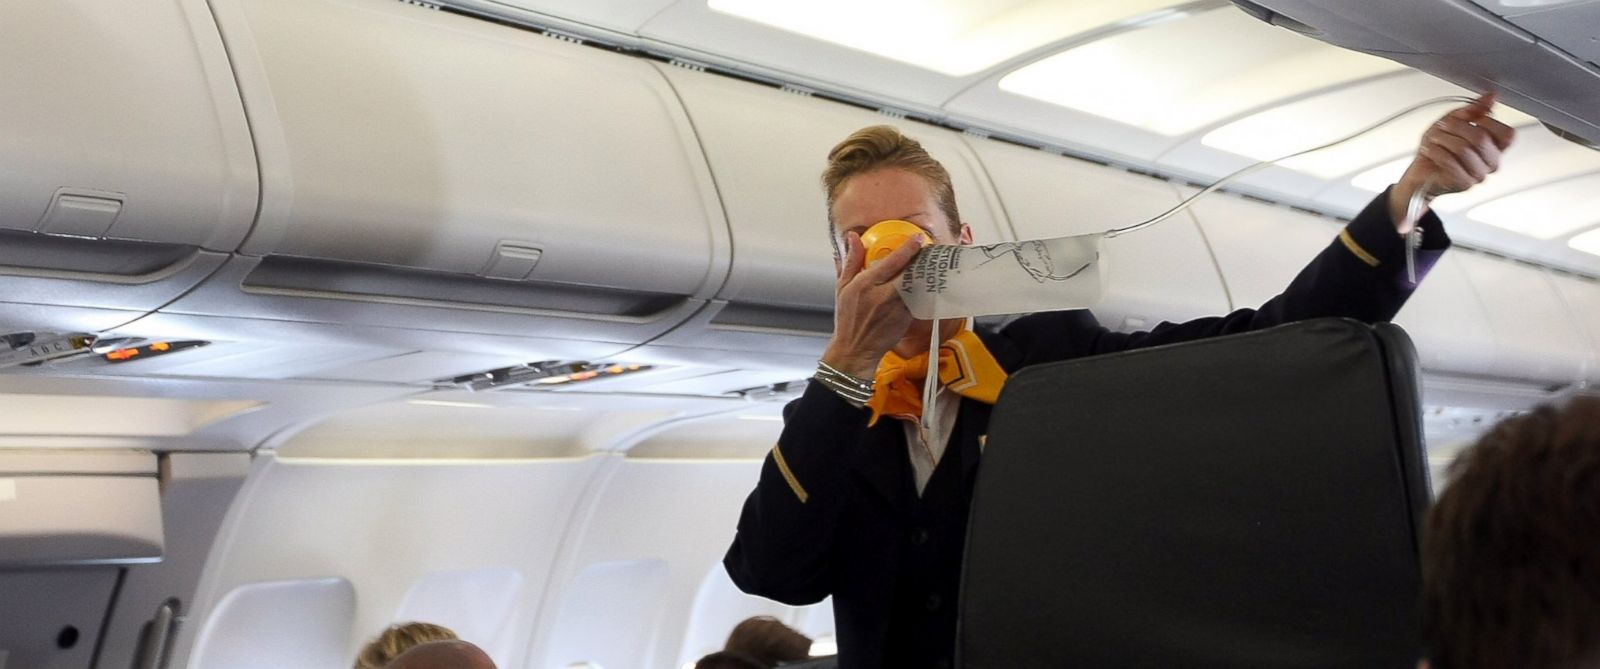 PHOTO: A Lufthansa flight attendant instructs passengers on the use of their oxygen masks on a flight to Frankfurt on September 14, 2012 at Tegel airport in Berlin, Germany.